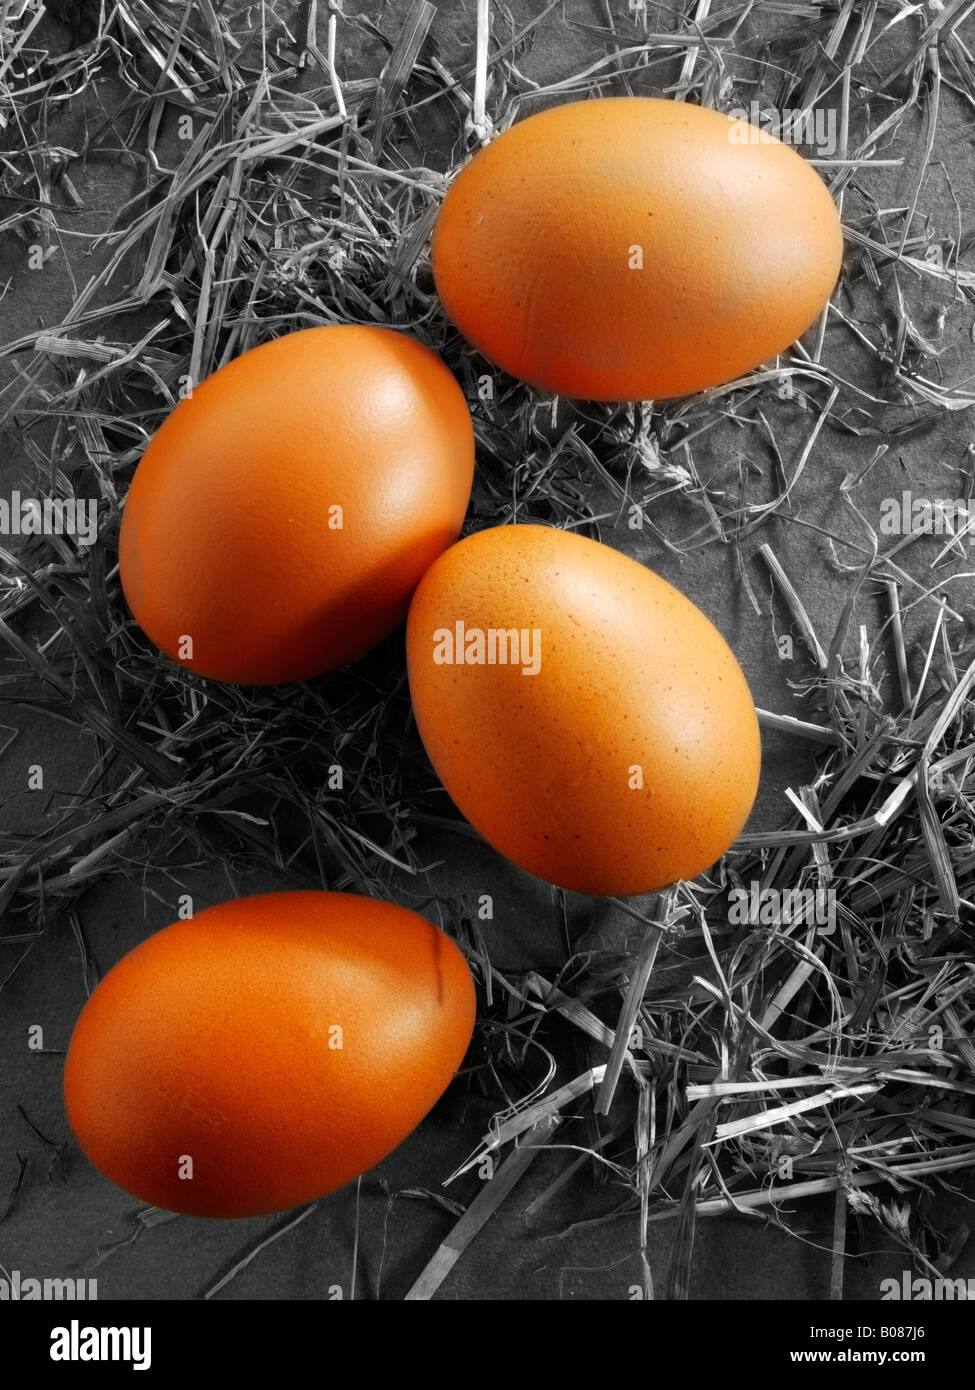 Burford brown organic eggs - Stock Image